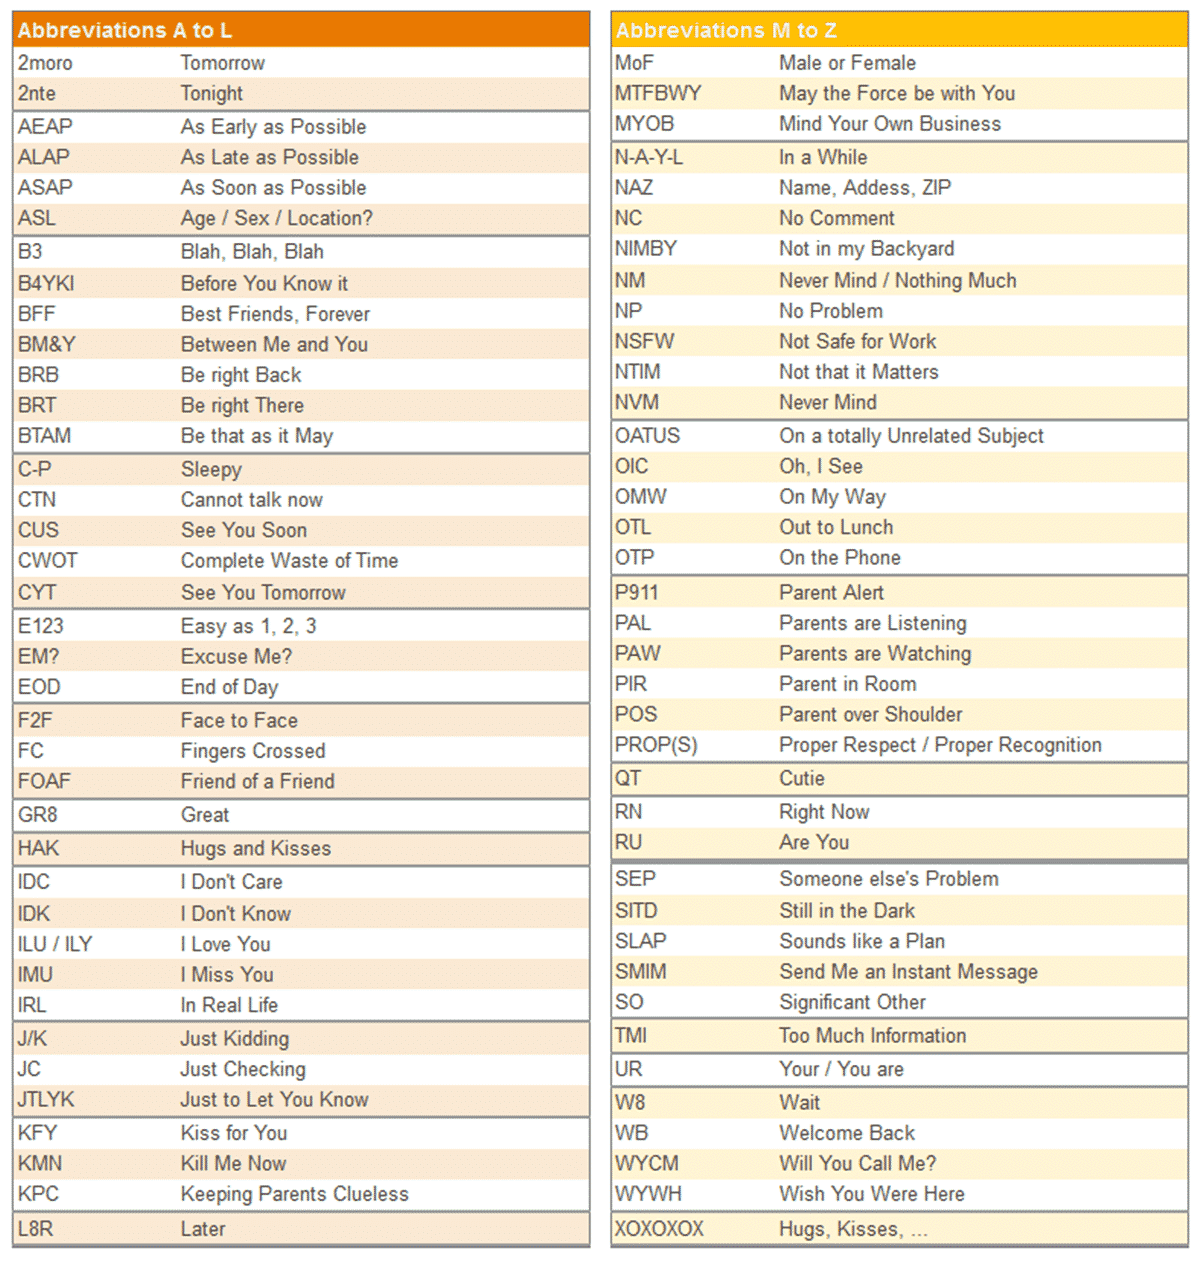 Texting Abbreviations and Internet Acronym